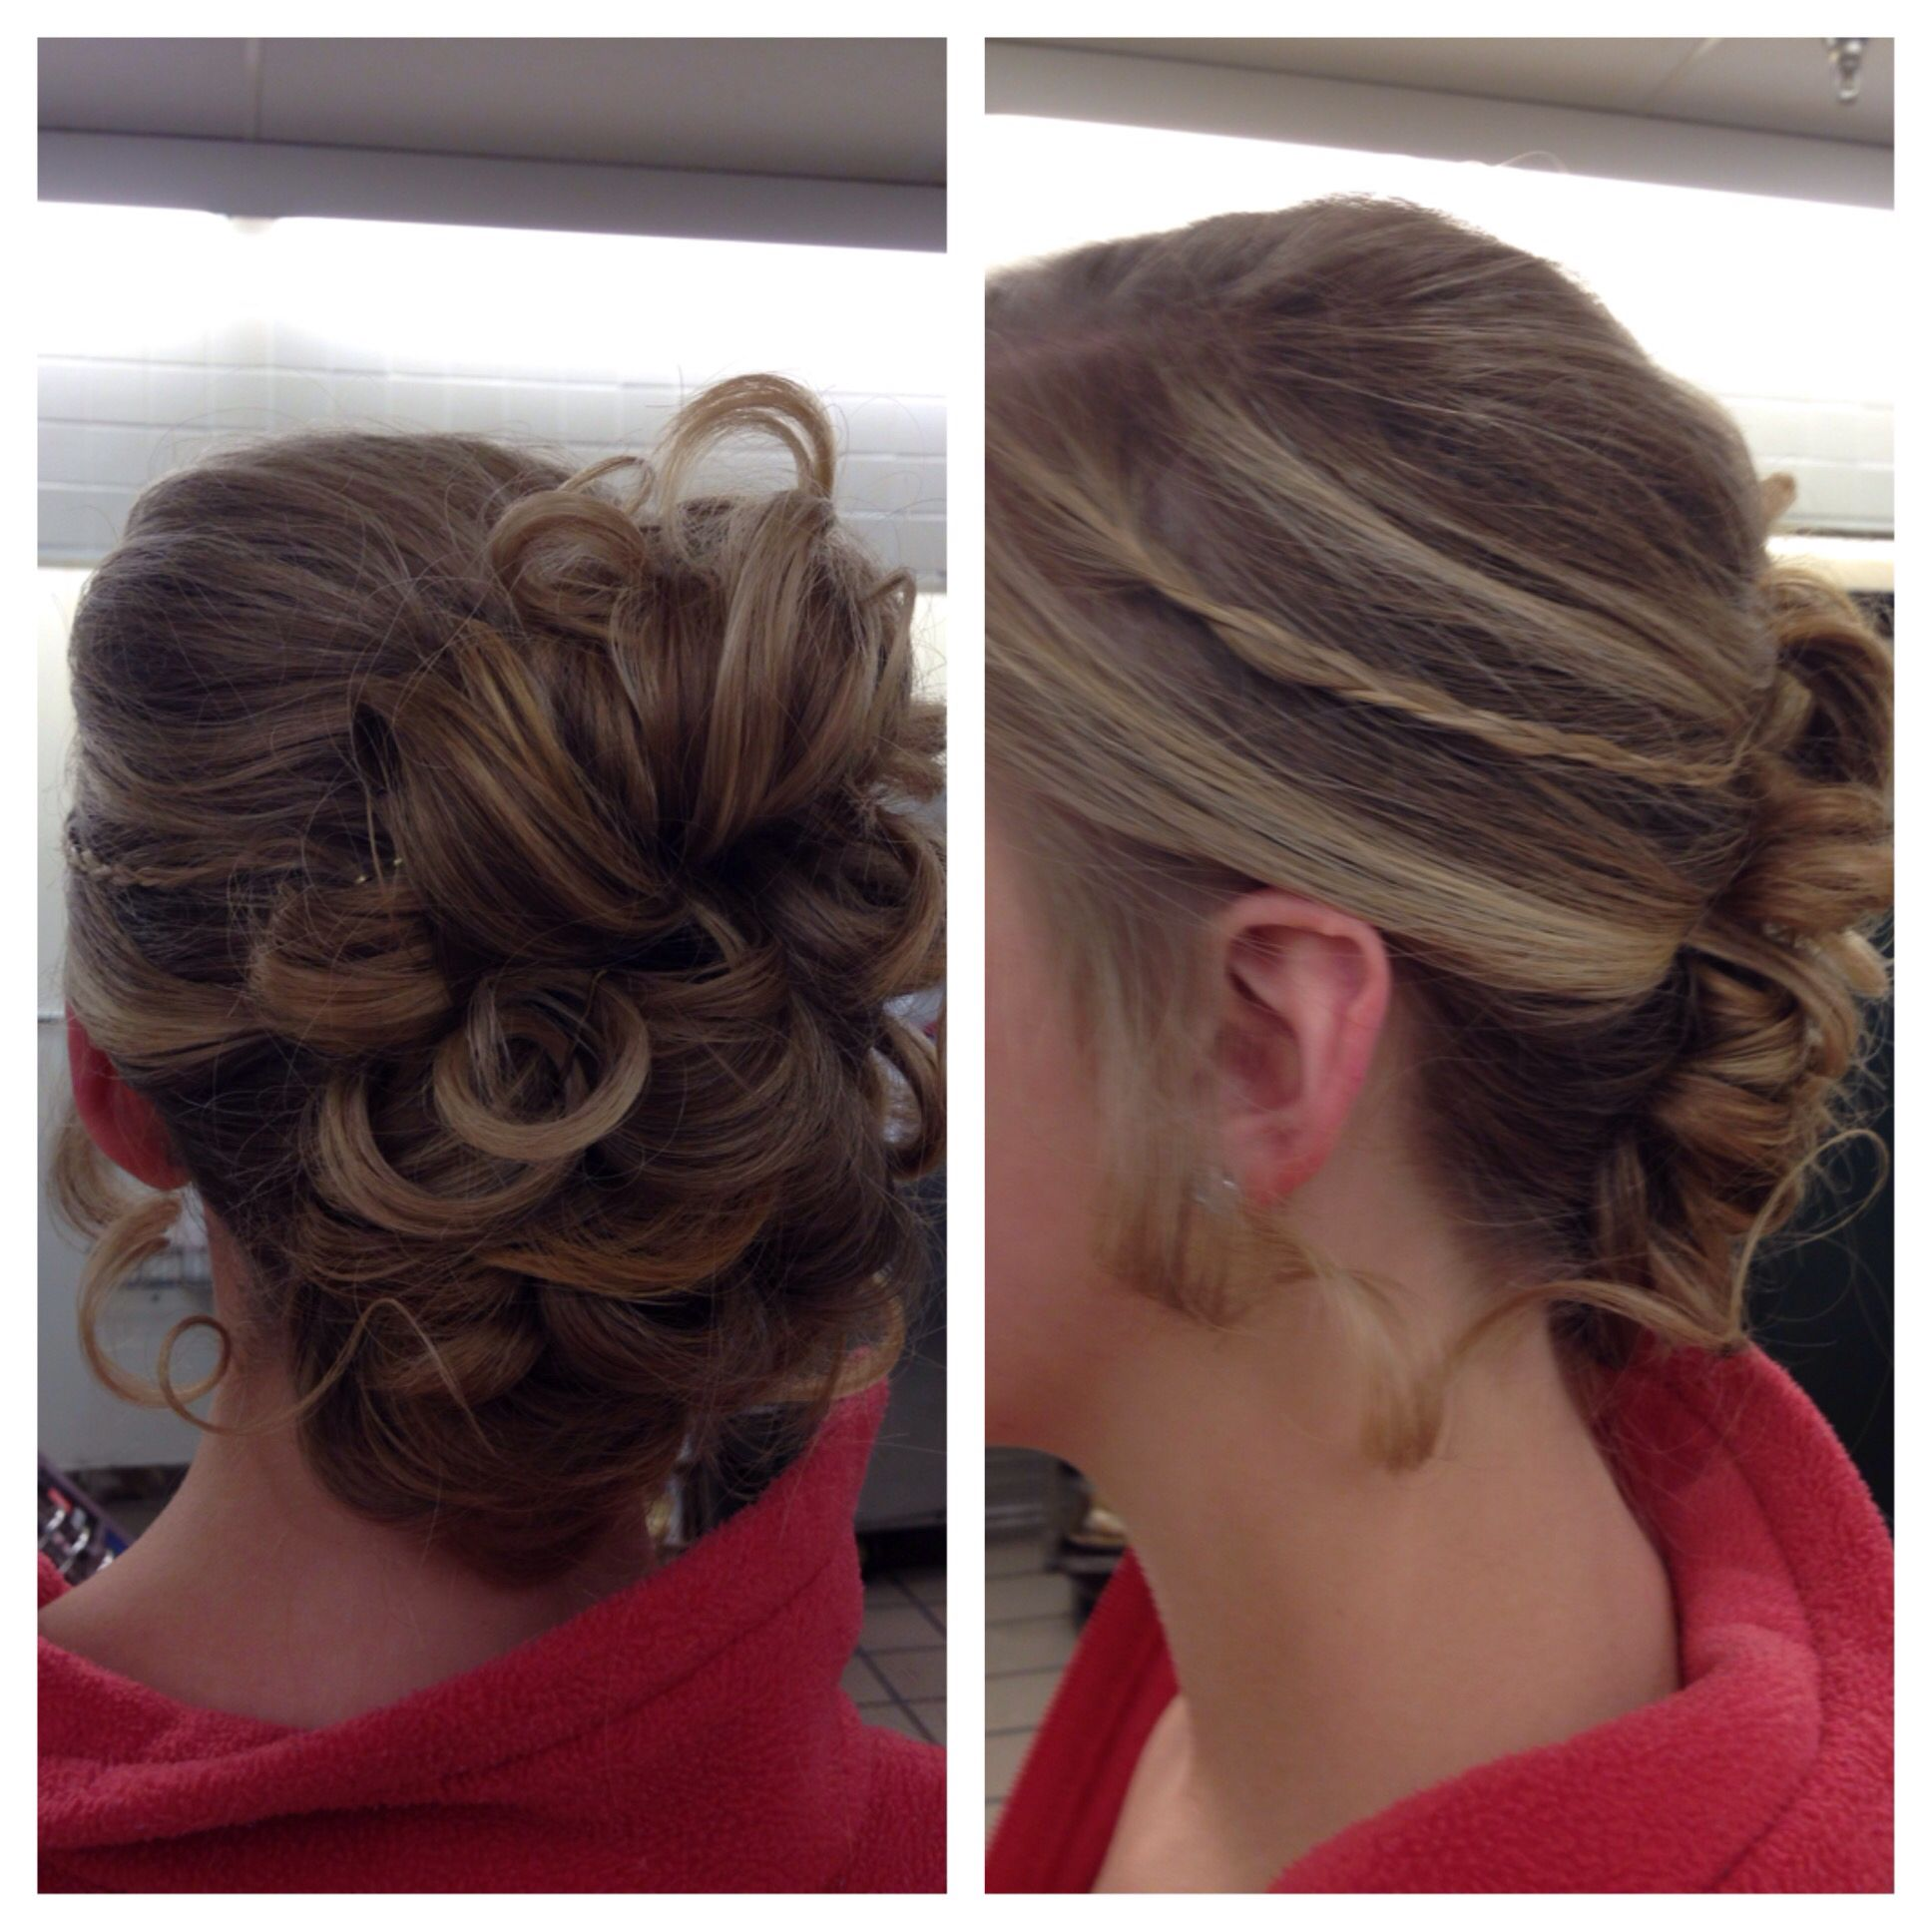 Cute homecoming hair style hair styles pinterest homecoming